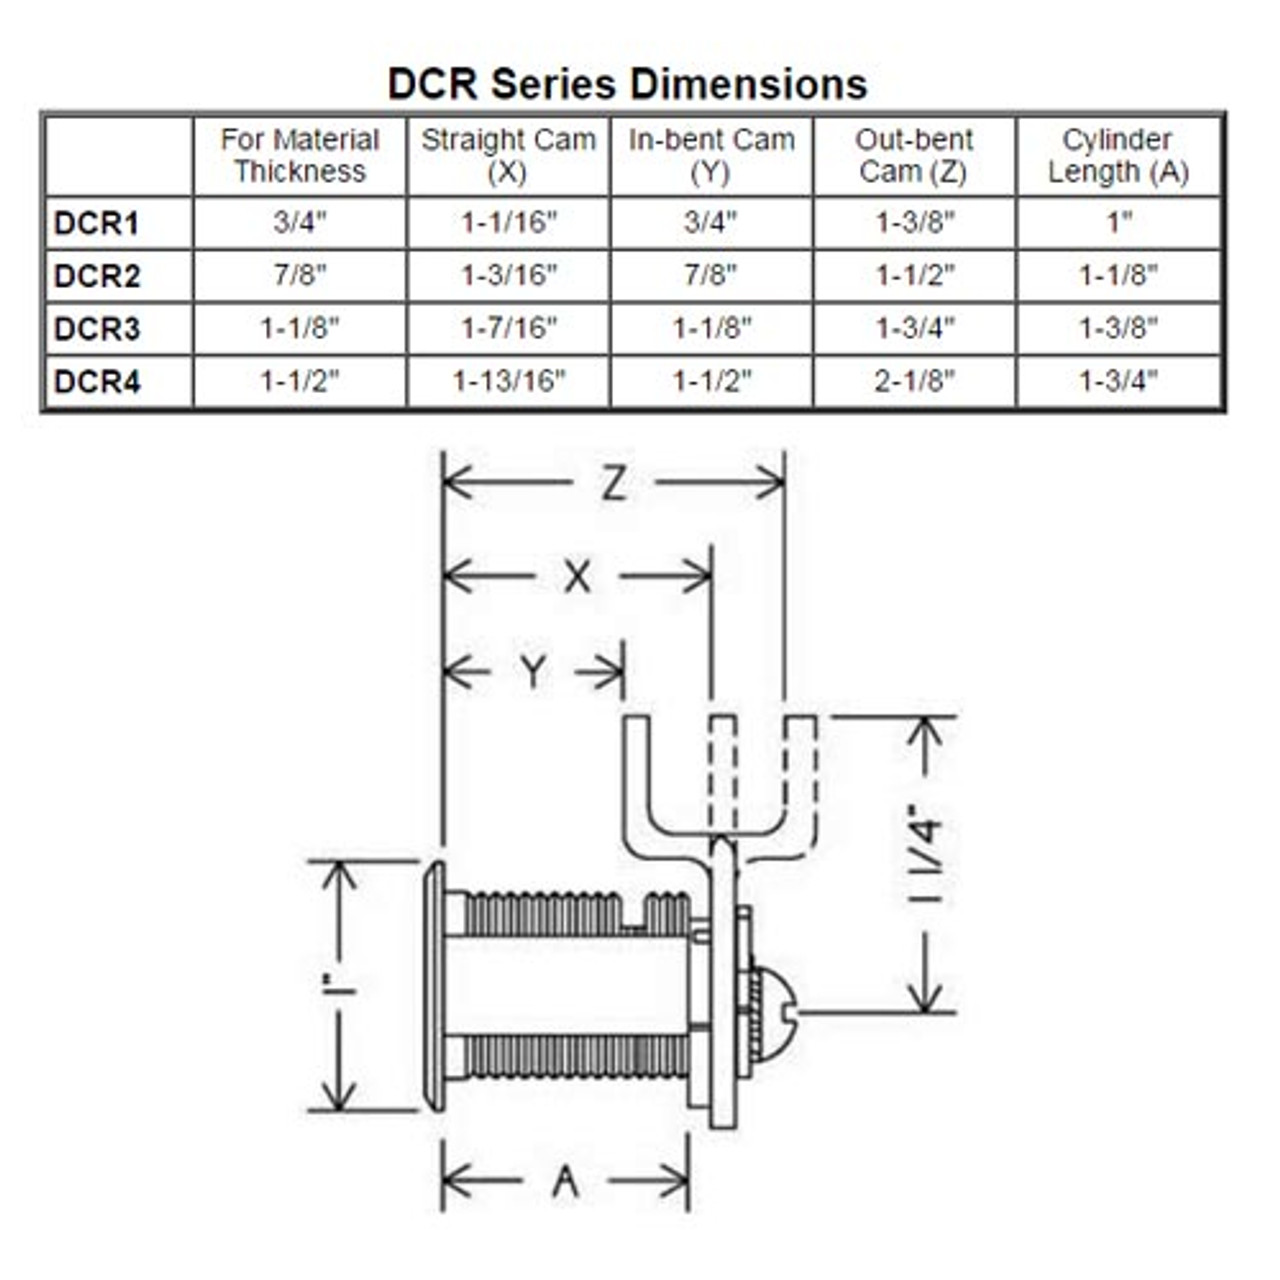 Olympus DCR2-KD-US3 R Series Keyed Different Reversible Cam Lock in Bright Brass